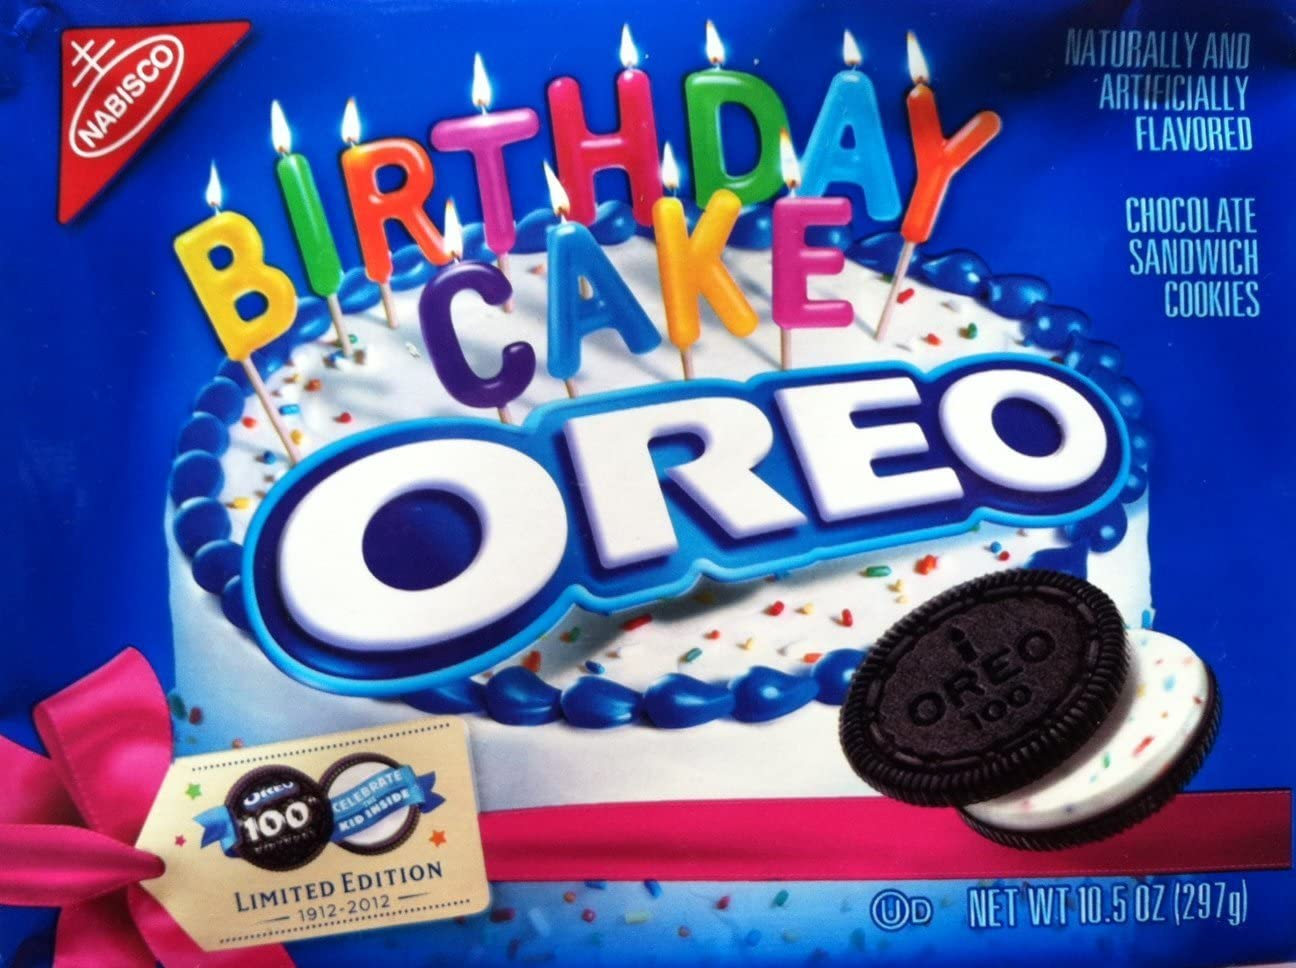 Phenomenal Oreo 100Th Birthday Cake Cookies Pack Of 2 Amazon Co Uk Grocery Funny Birthday Cards Online Overcheapnameinfo